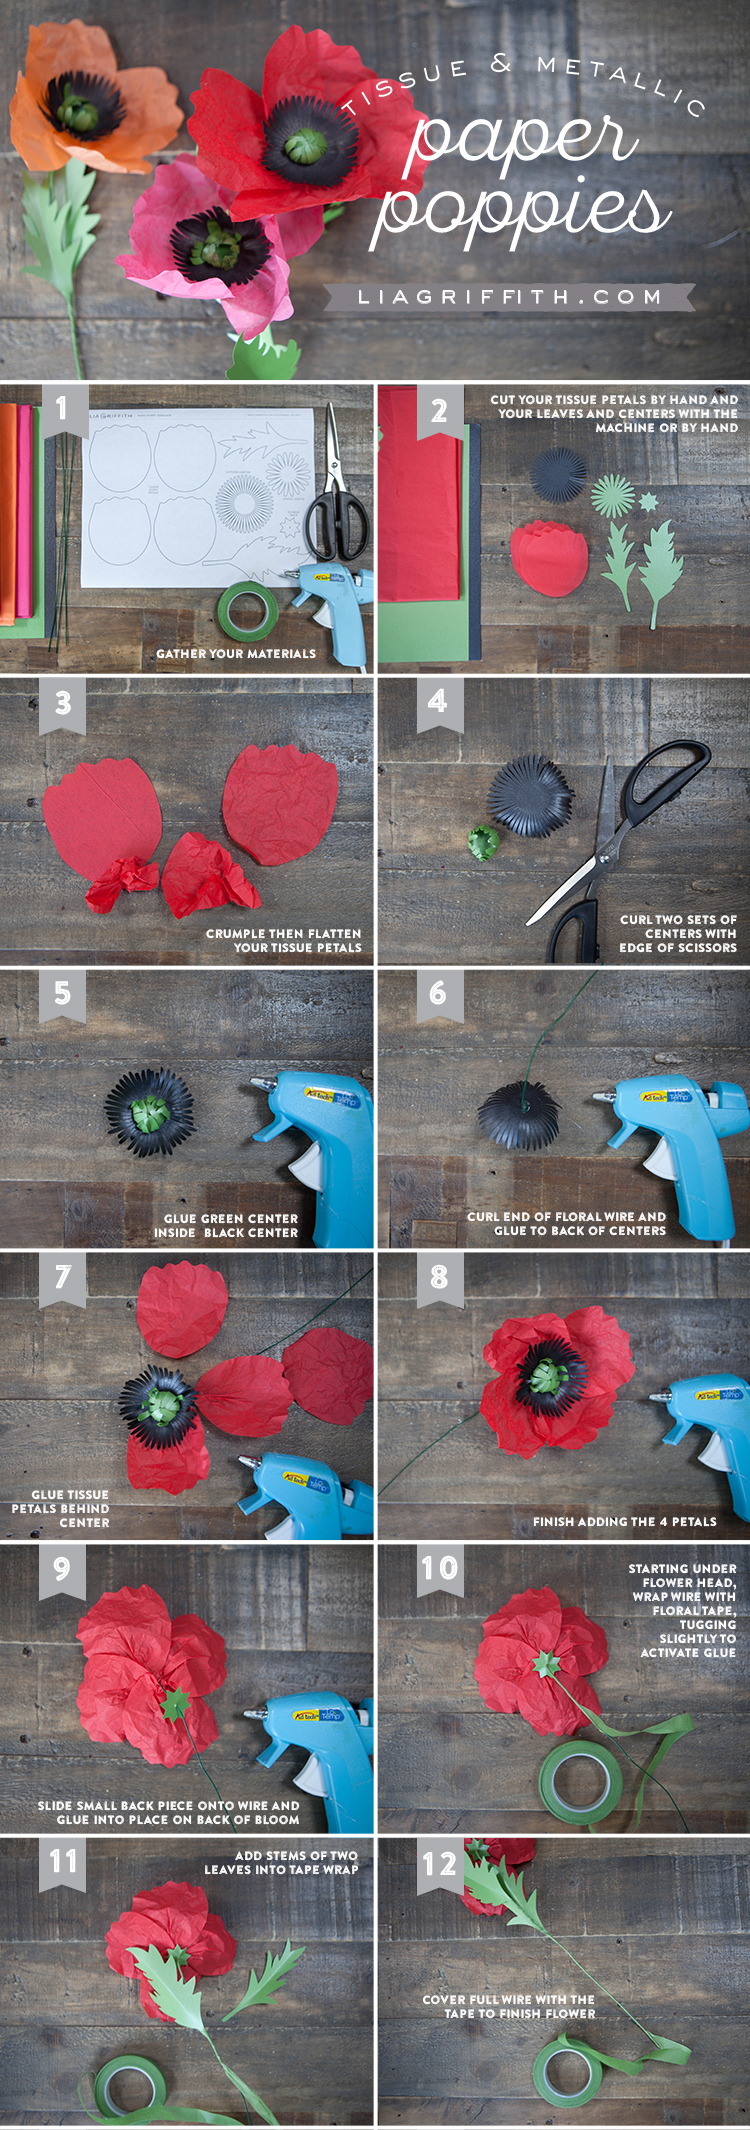 Easy To Follow Tissue Paper Poppy Tutorial By Lia Griffith